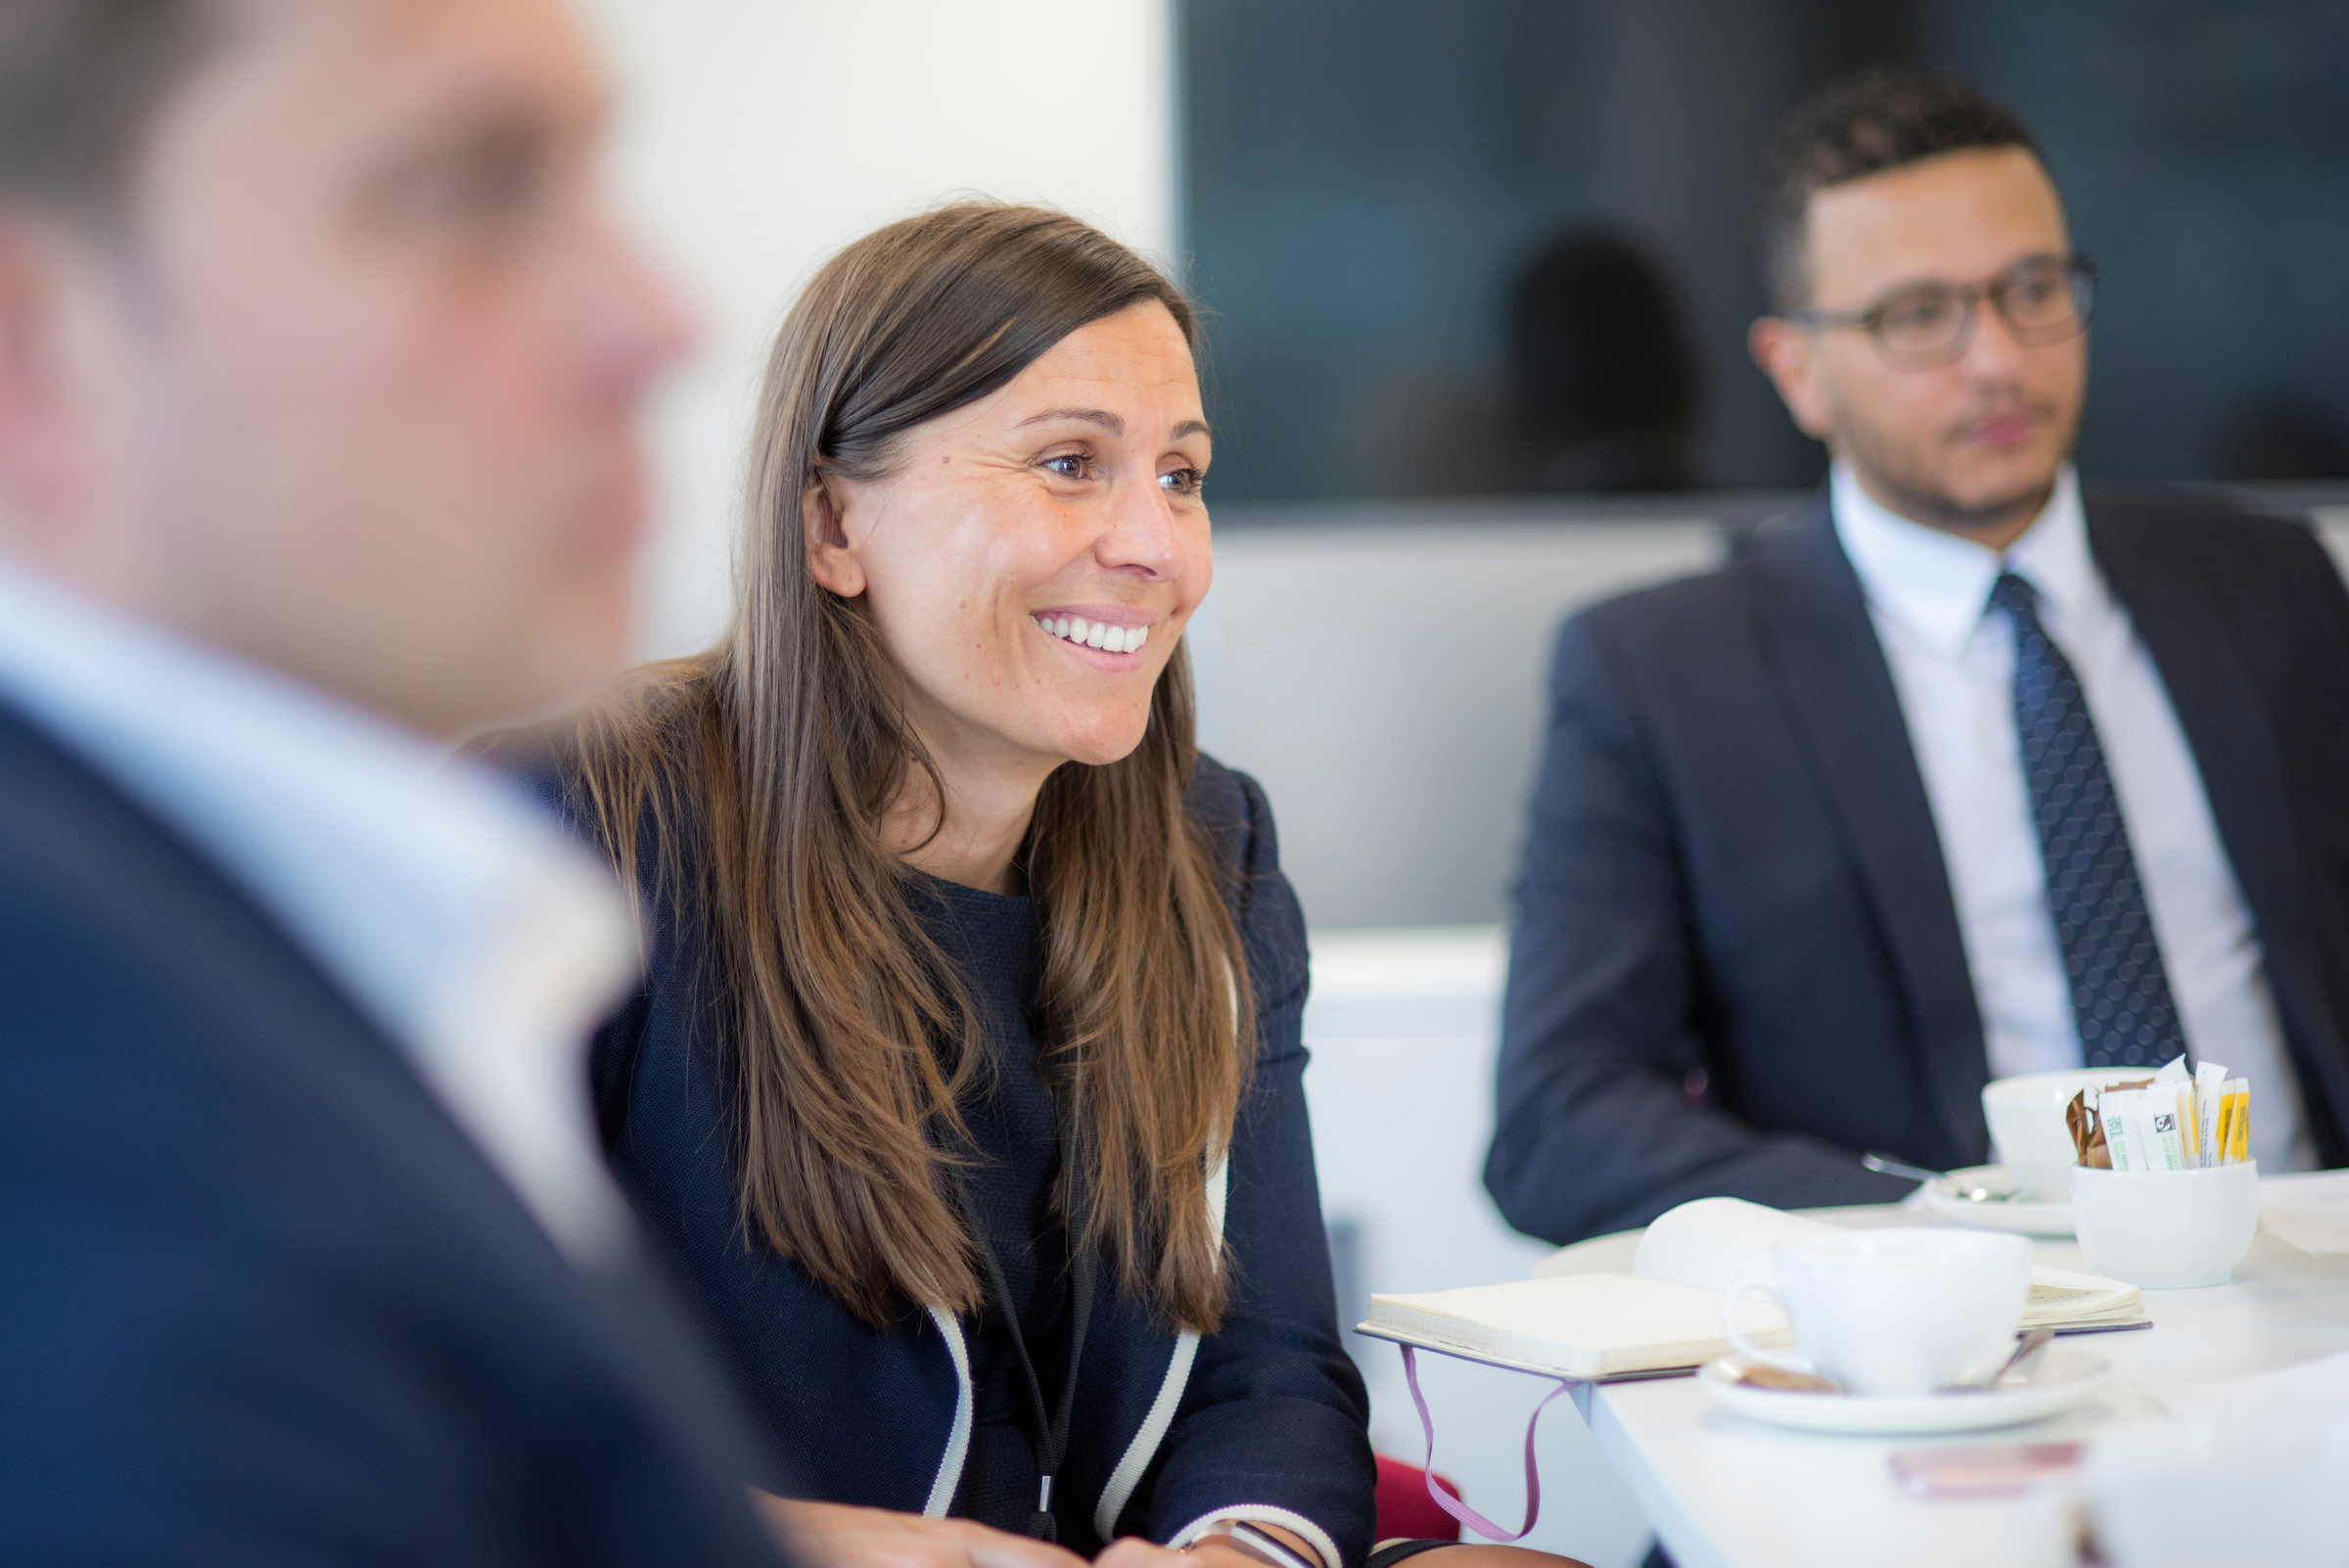 Long-haired woman smiling in a meeting environment